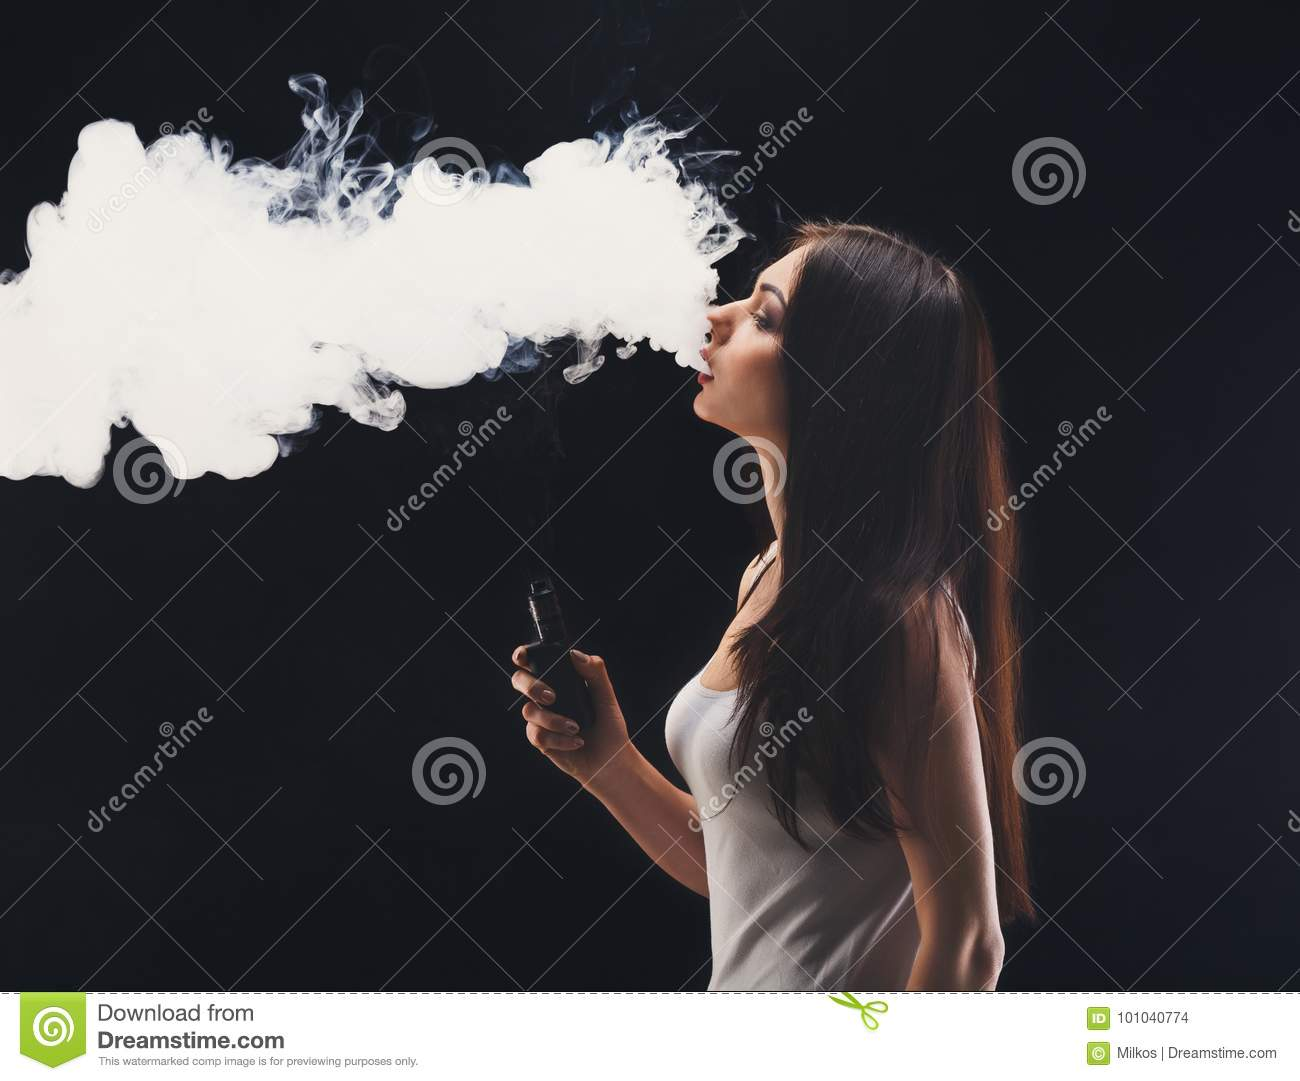 Young woman vaping e-cigarette with smoke on black